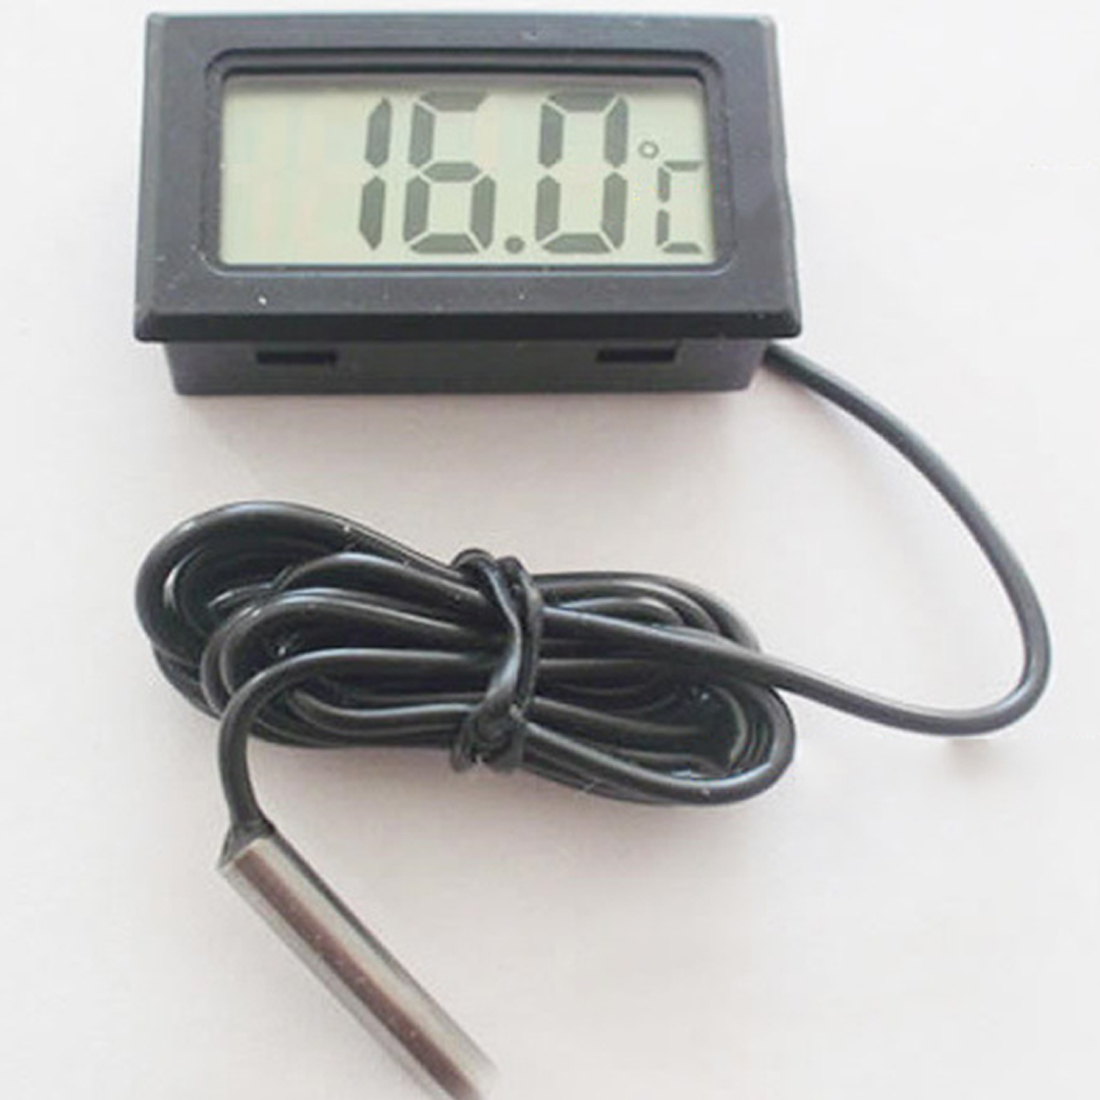 High Mini LCD Display Inlay Digital Thermometer Probe Refrigerator/Fish Tank Temperature Tester( -50C~110C ) Include Batteries